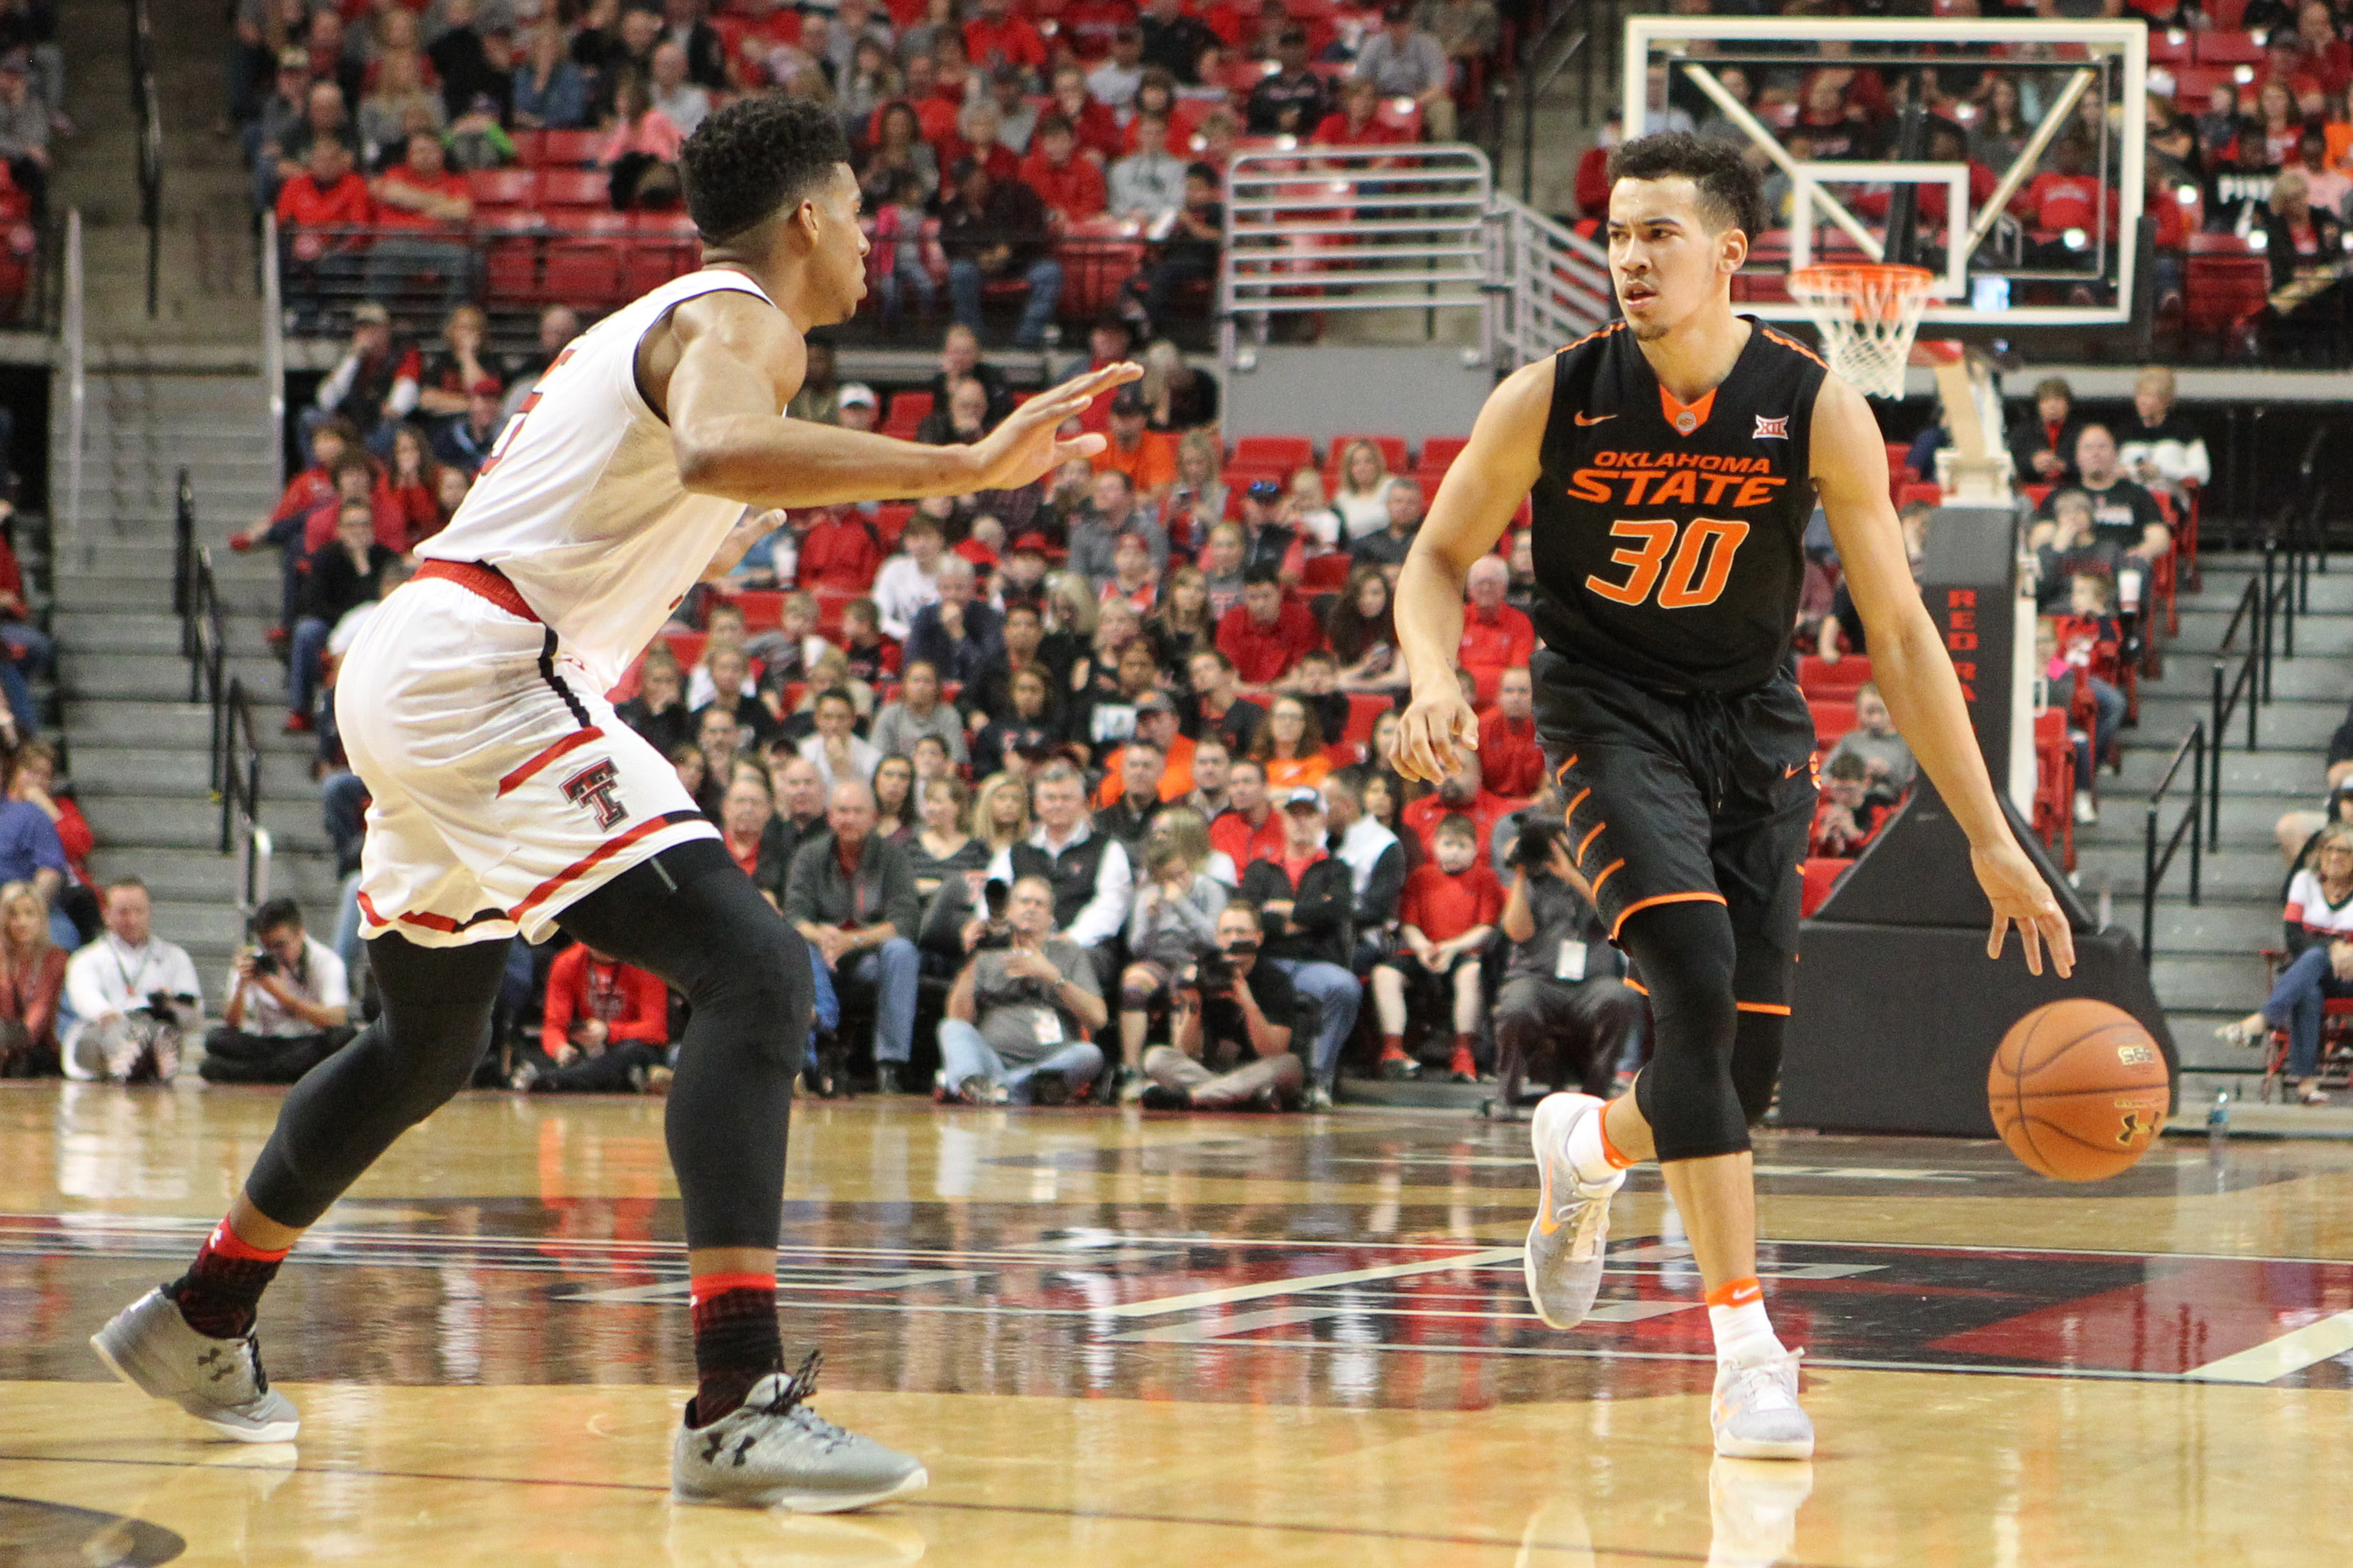 9828188-ncaa-basketball-oklahoma-state-at-texas-tech